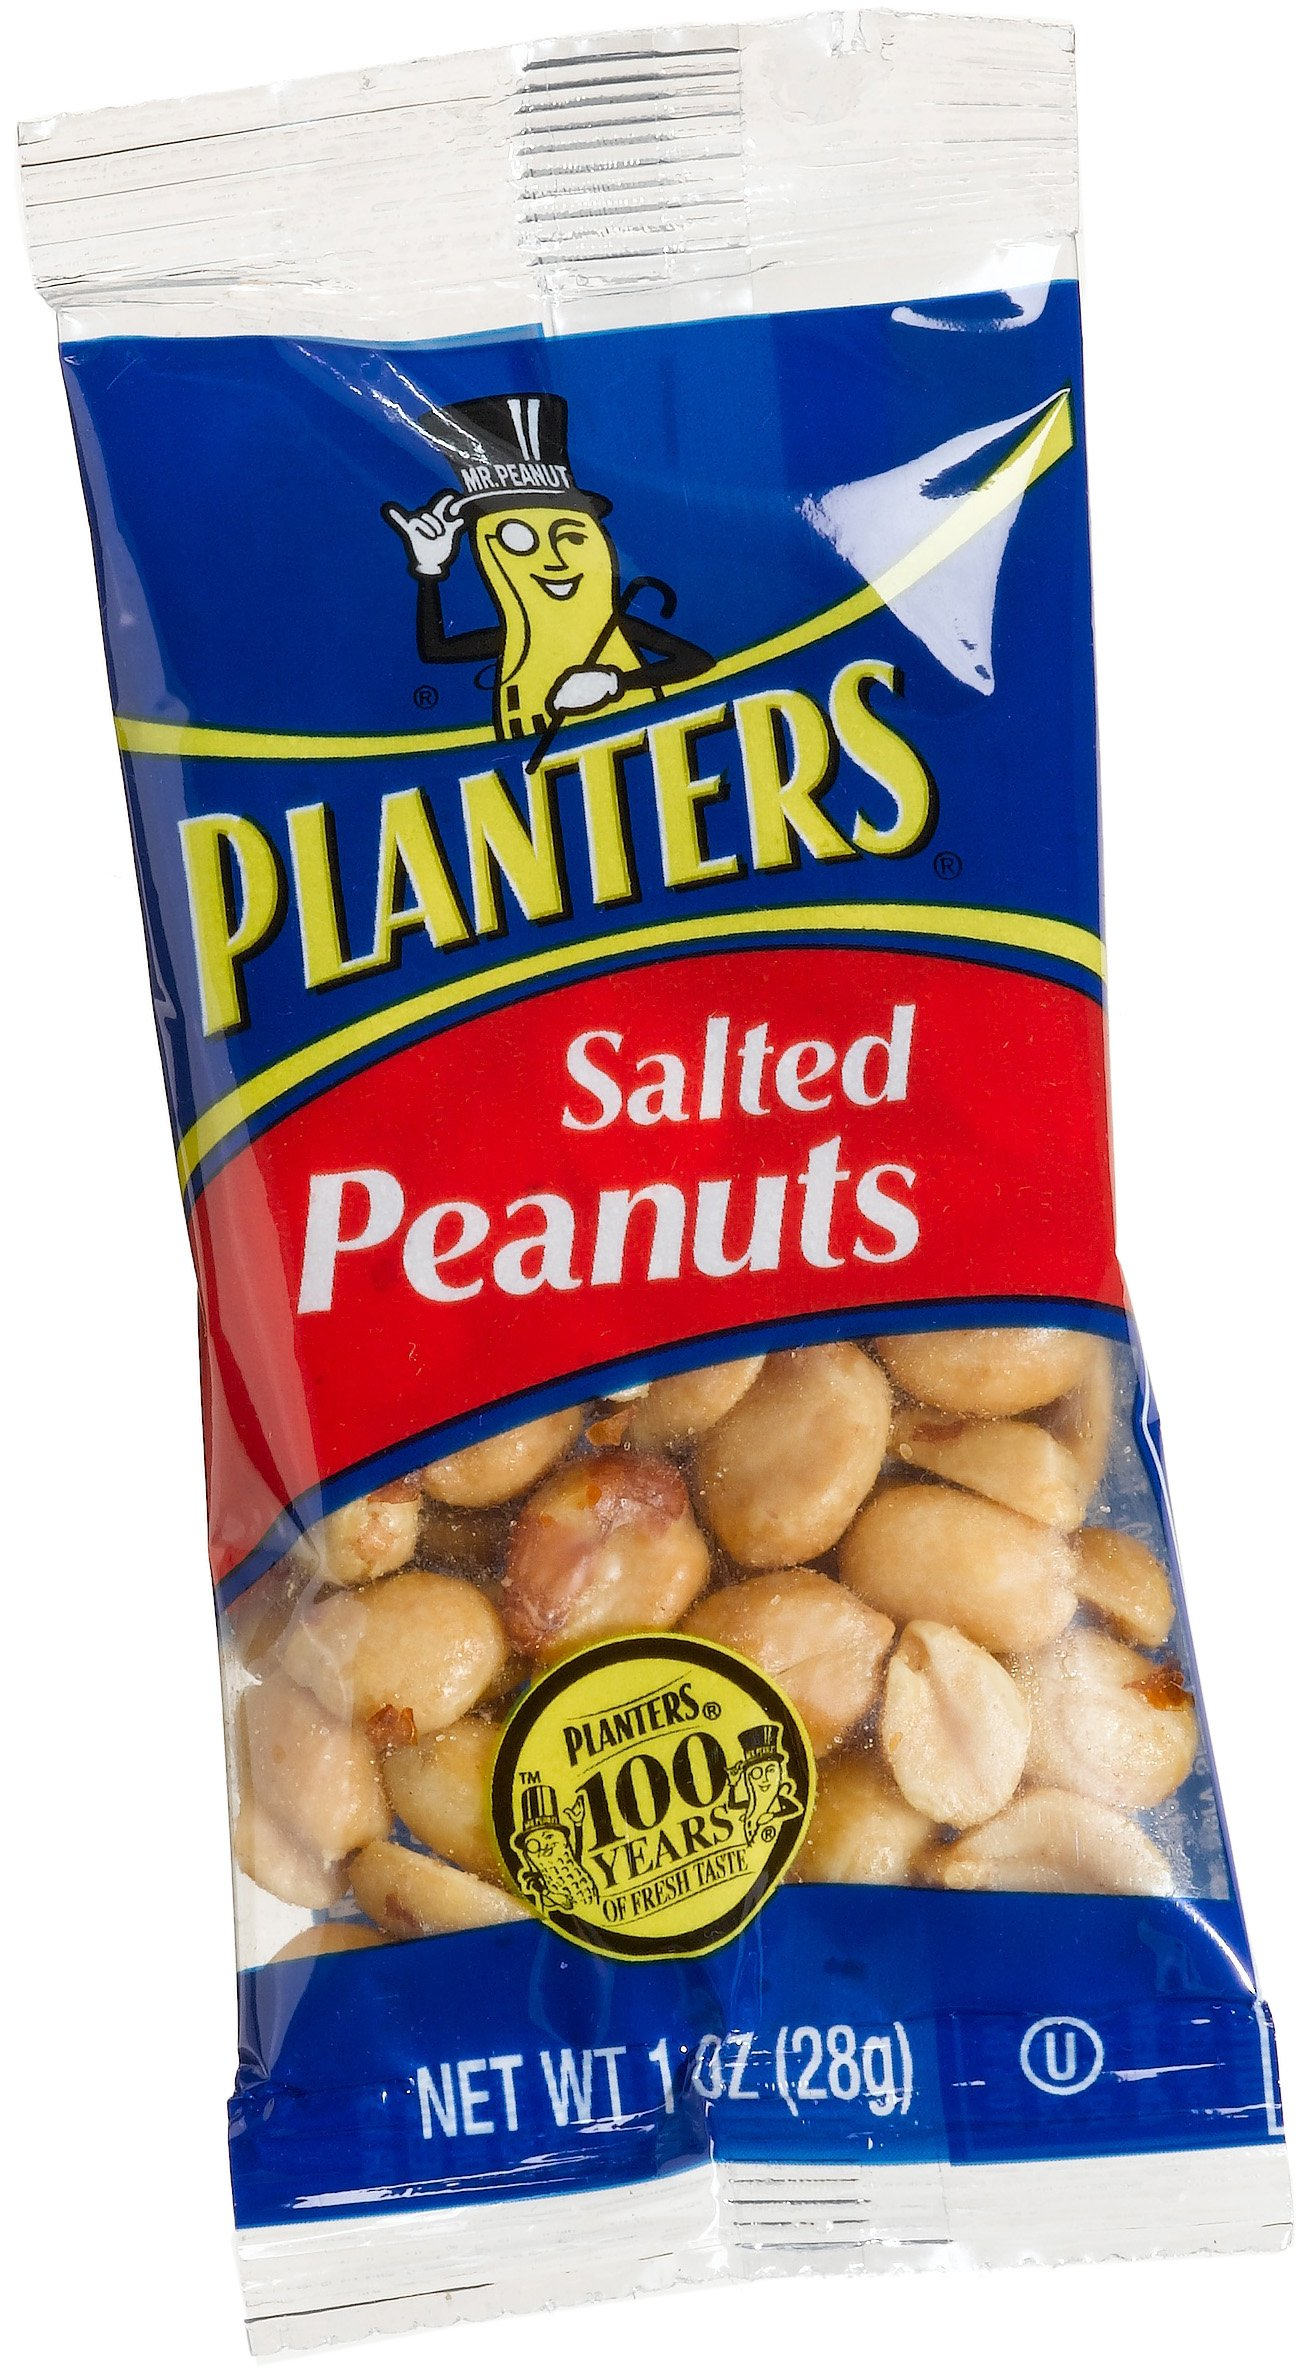 Planters Single Serve Salted Peanuts (1 oz Bags, Pack of 144) by Planters (Image #2)